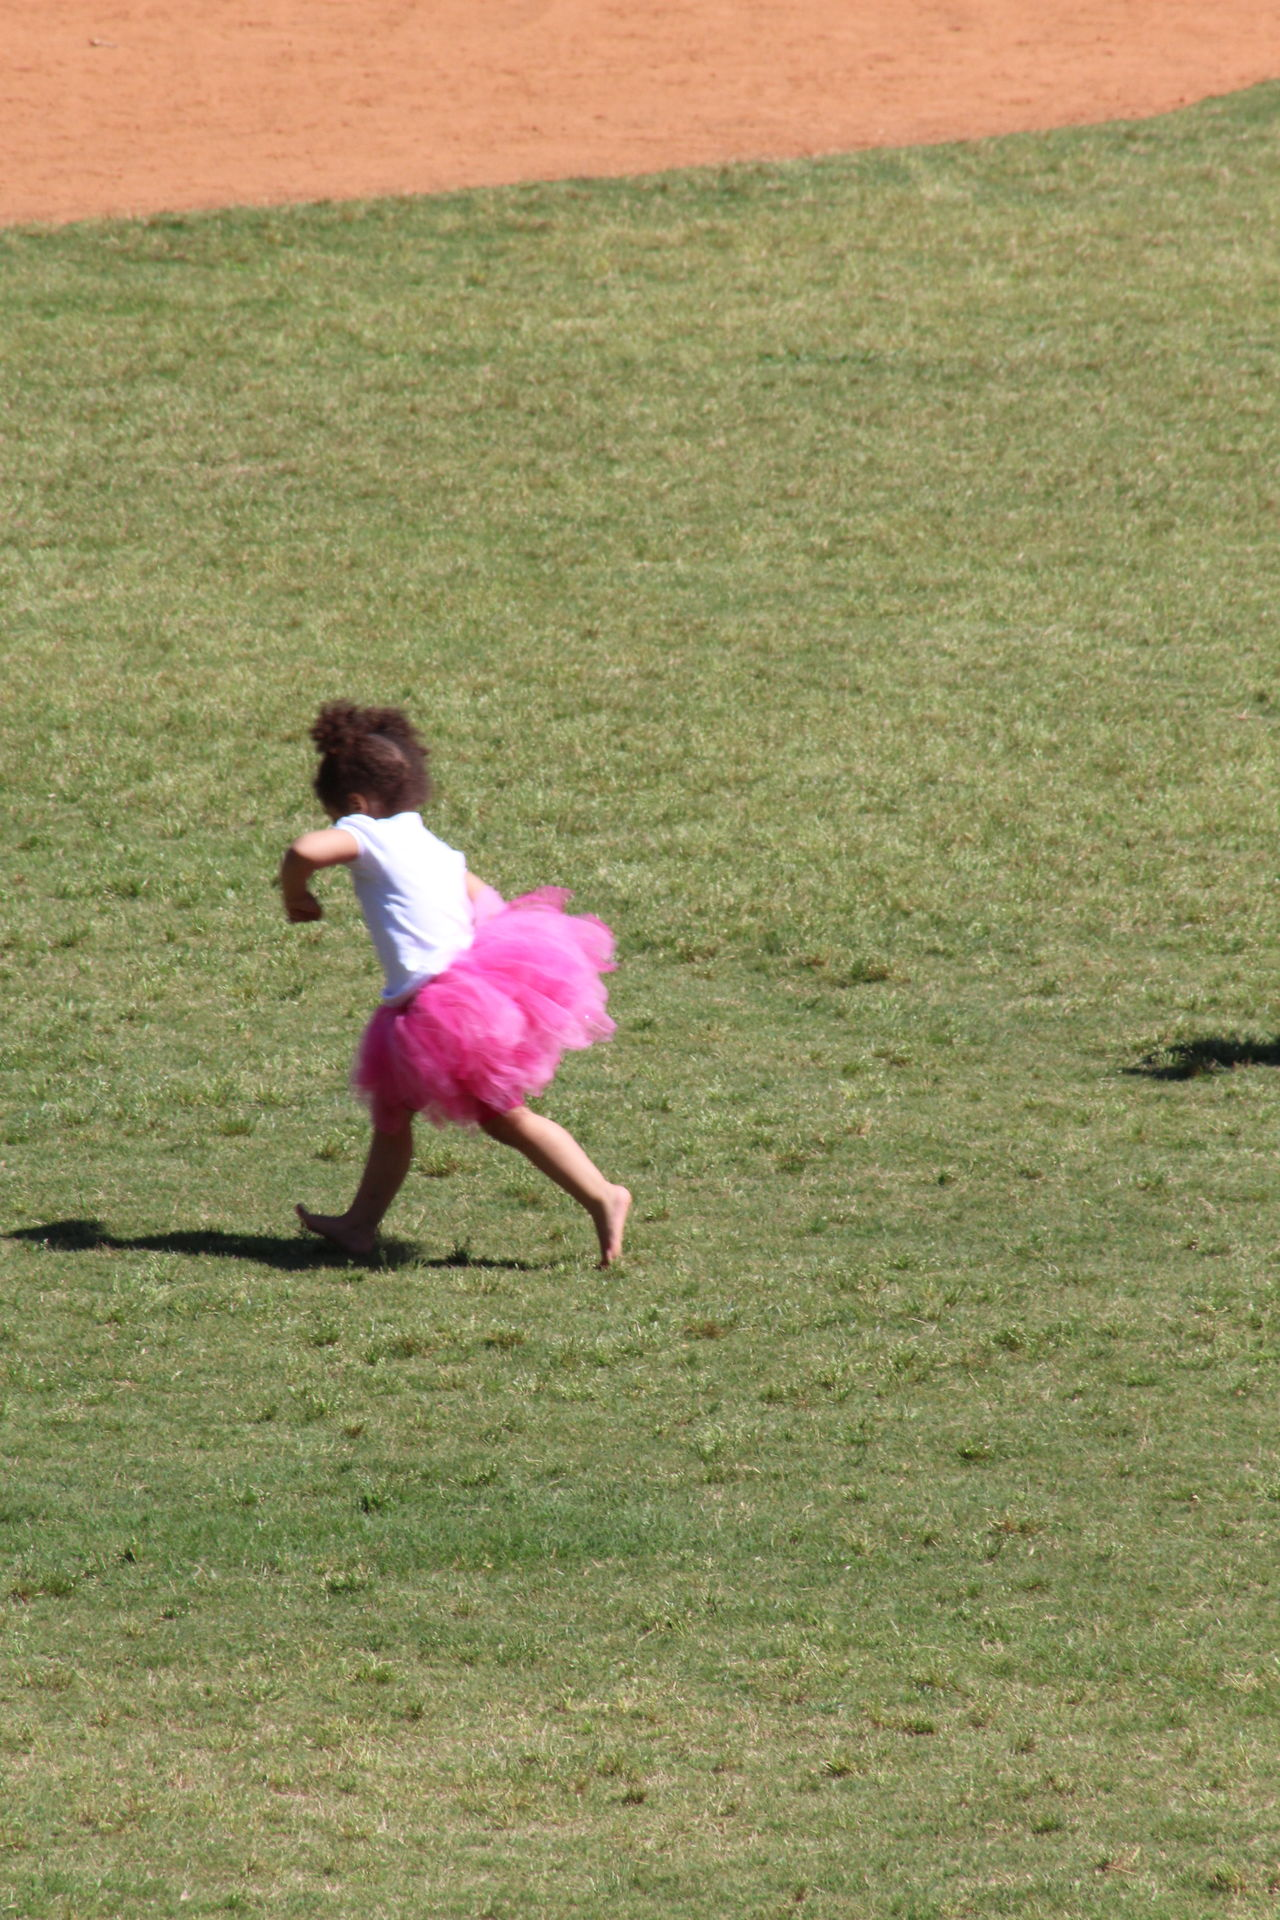 Childhood Cute Elementary Age Enjoyment Fun Girls Grassy Innocence Leisure Activity MyPhotography Outdoors Pink Pink Dress❤ Playful Playing Running Taking Photos